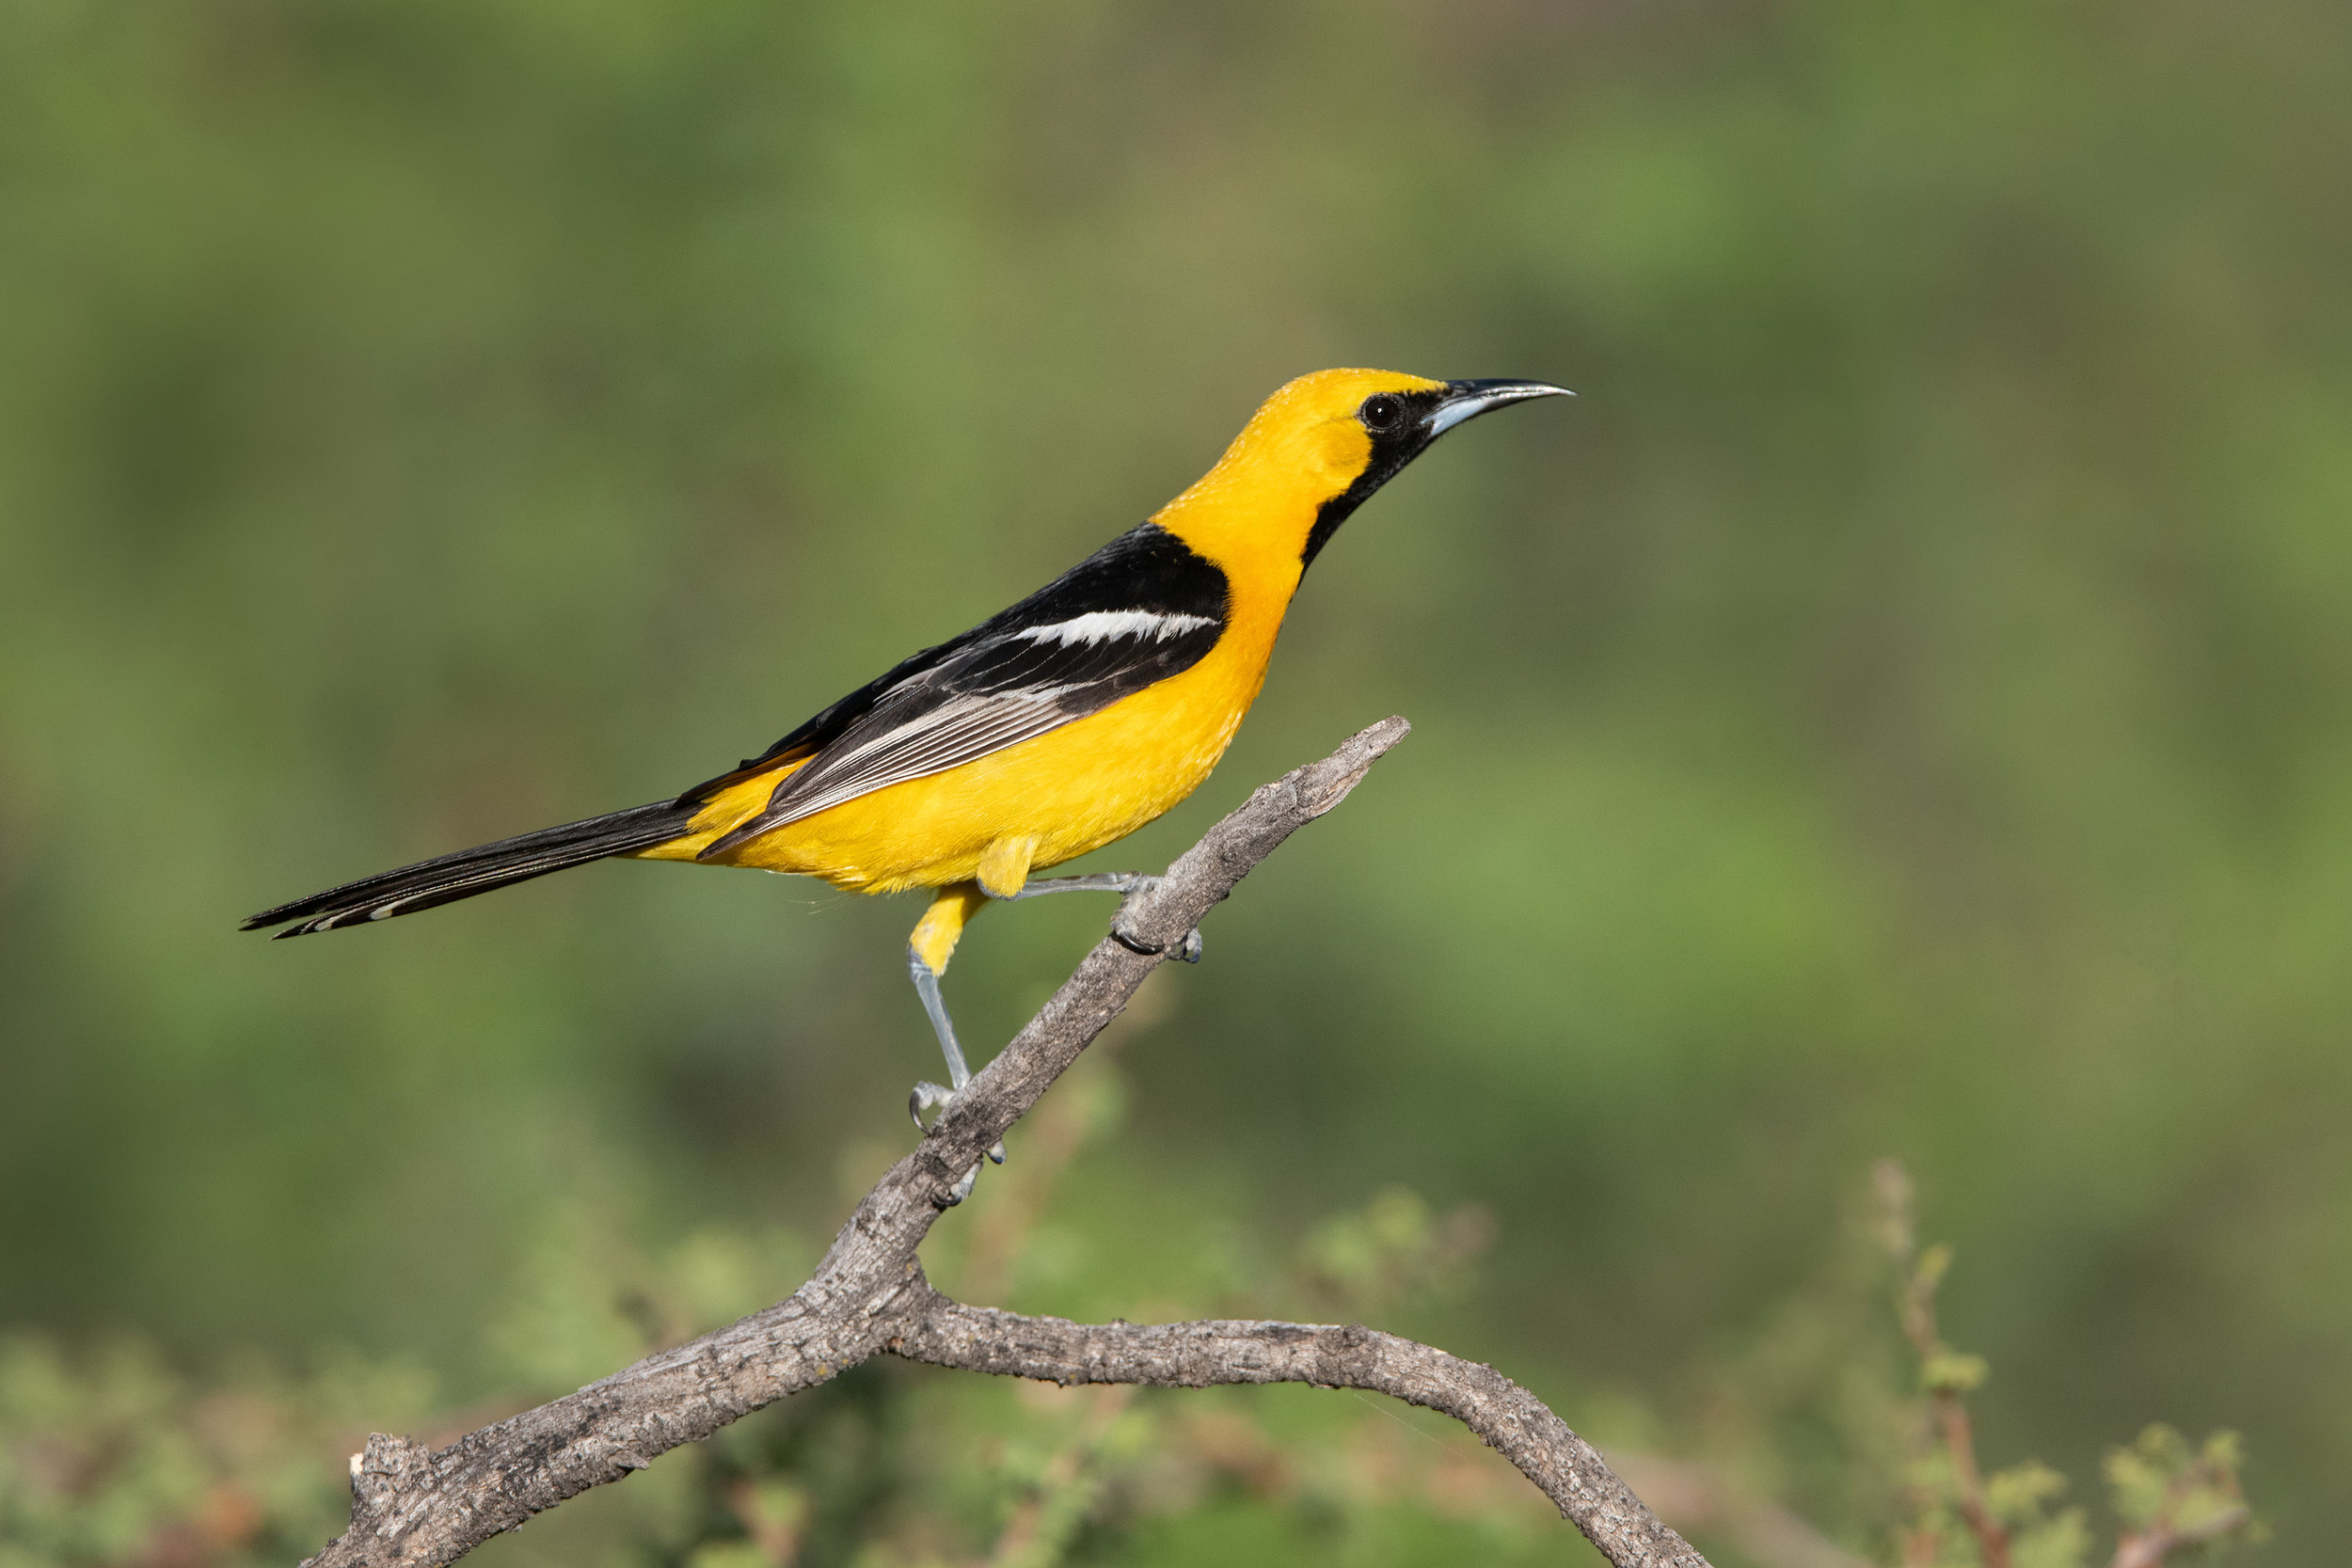 hooded_oriole_4817b35.jpg